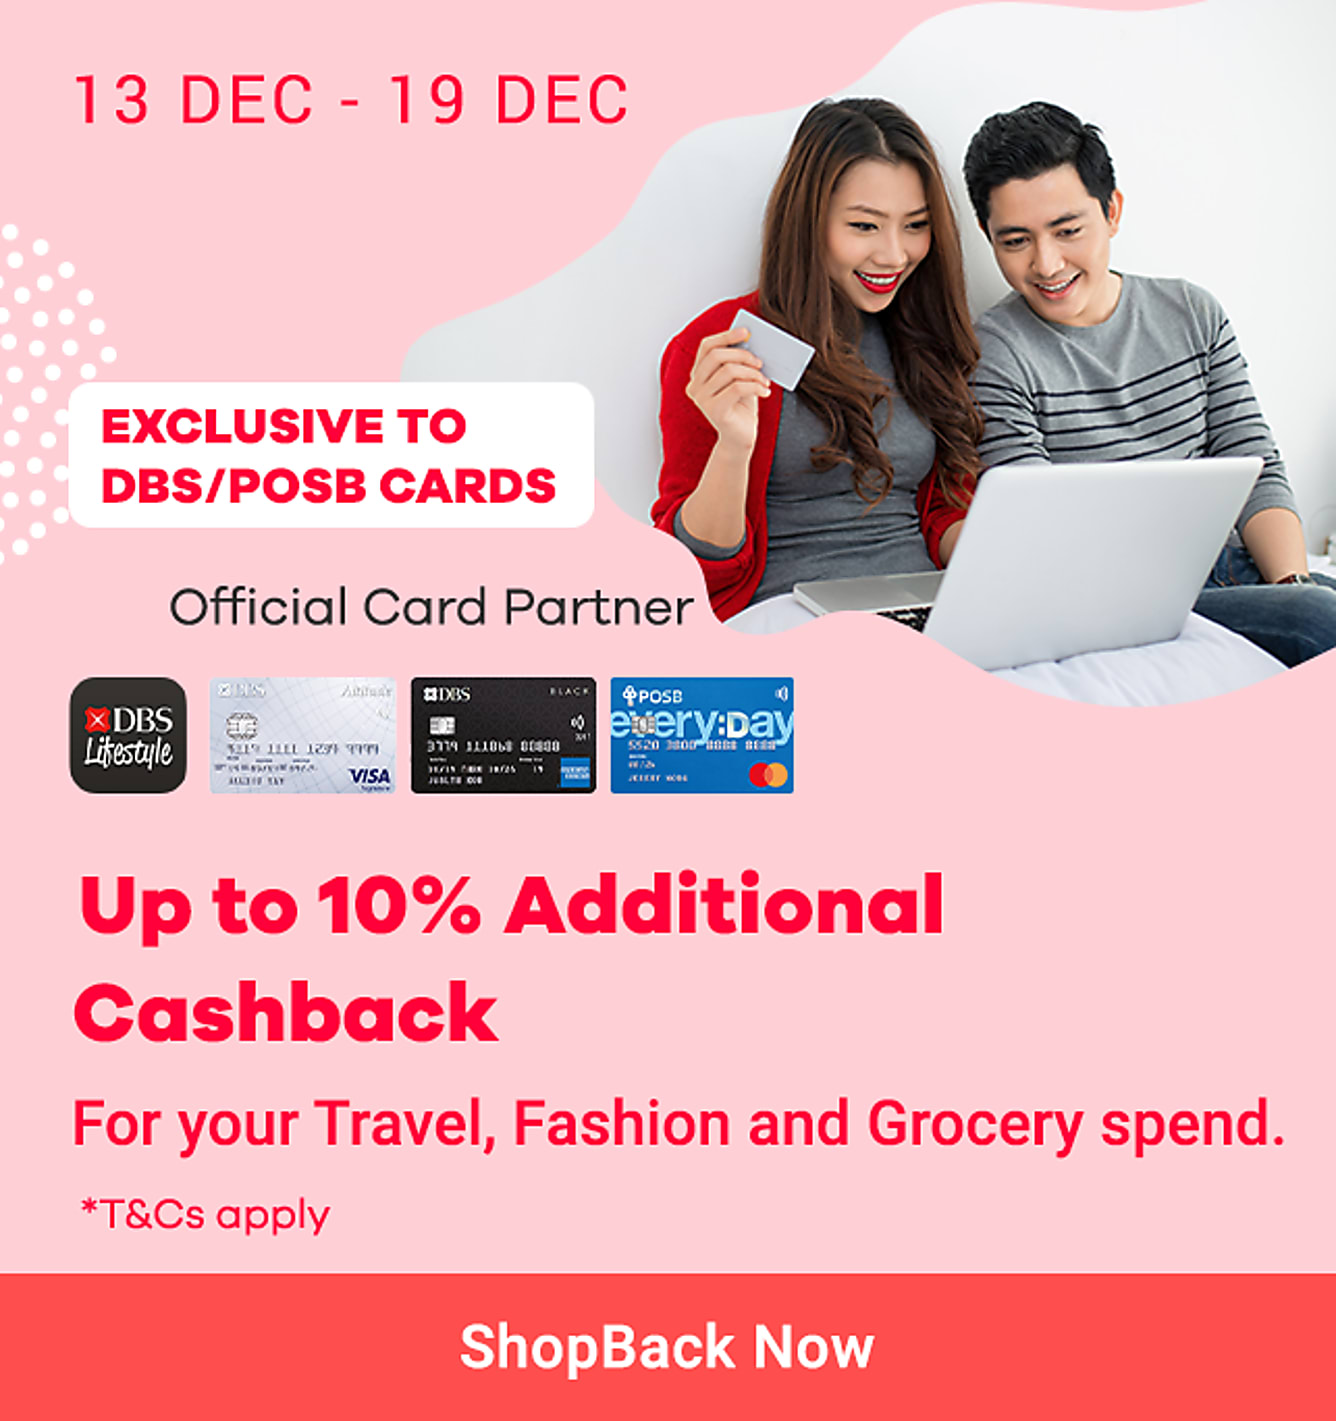 DBS 1212 Up to Additional 20% Cashback